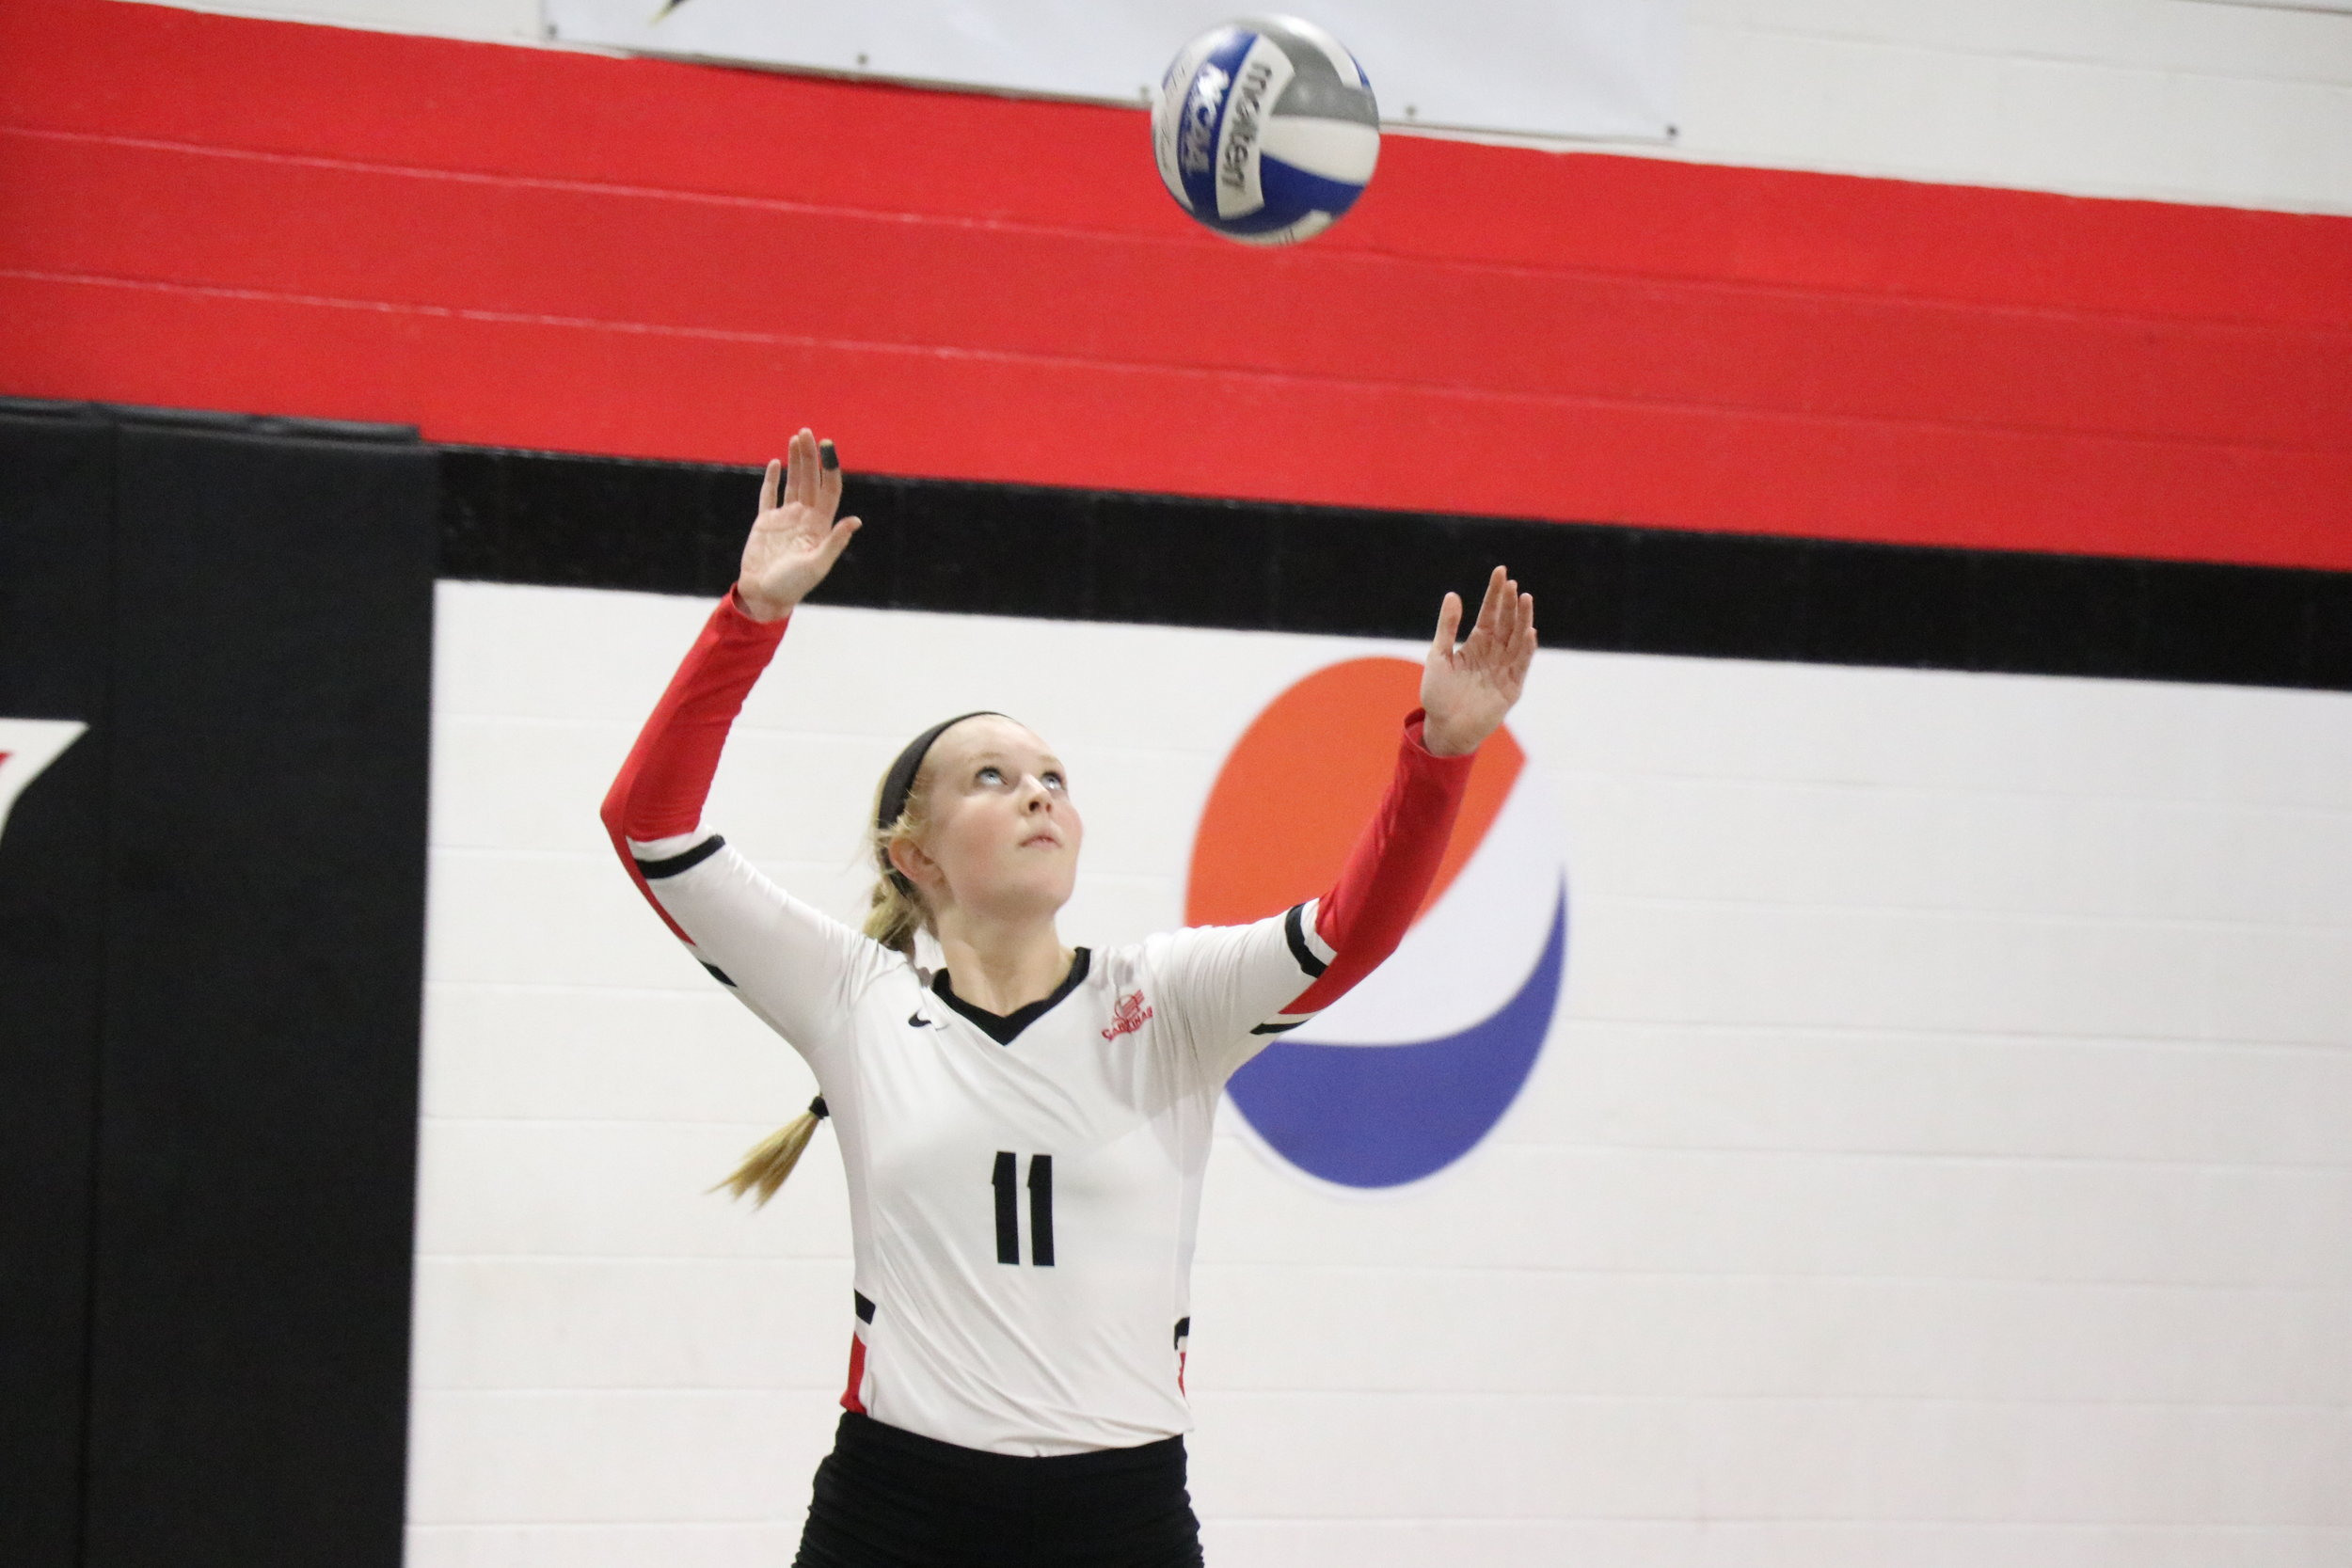 Junior, Madison Curtis serves the ball to the other team.